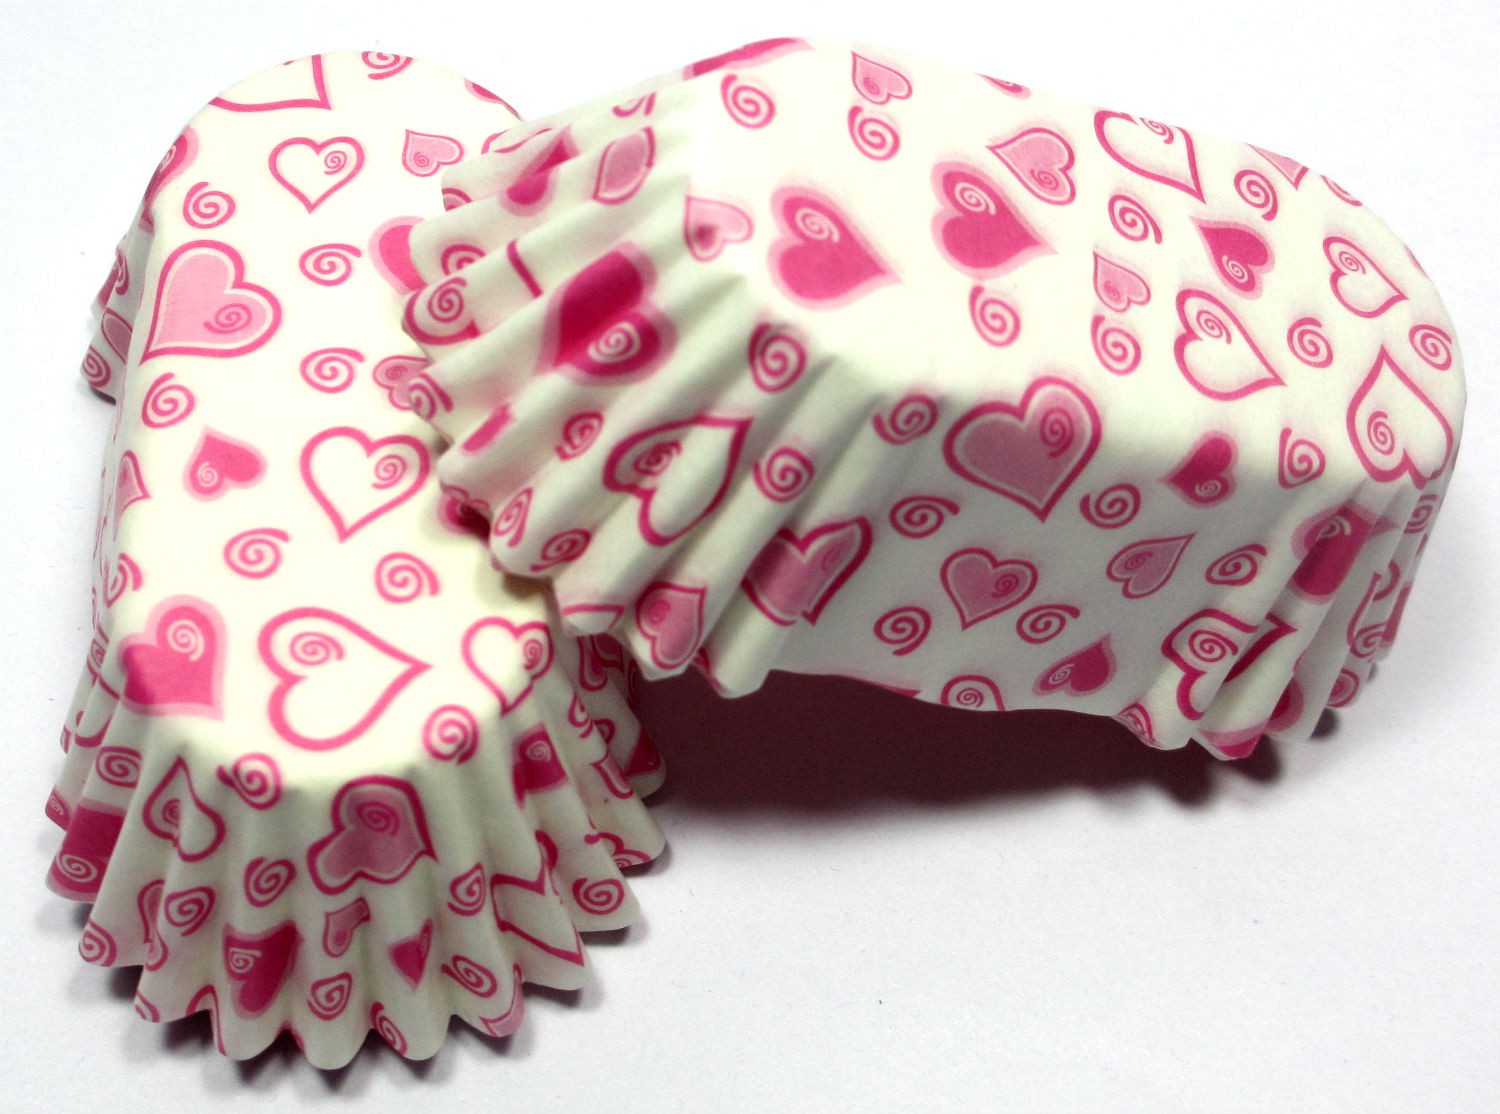 Heart Printed Baking Cups - (Set of 50)